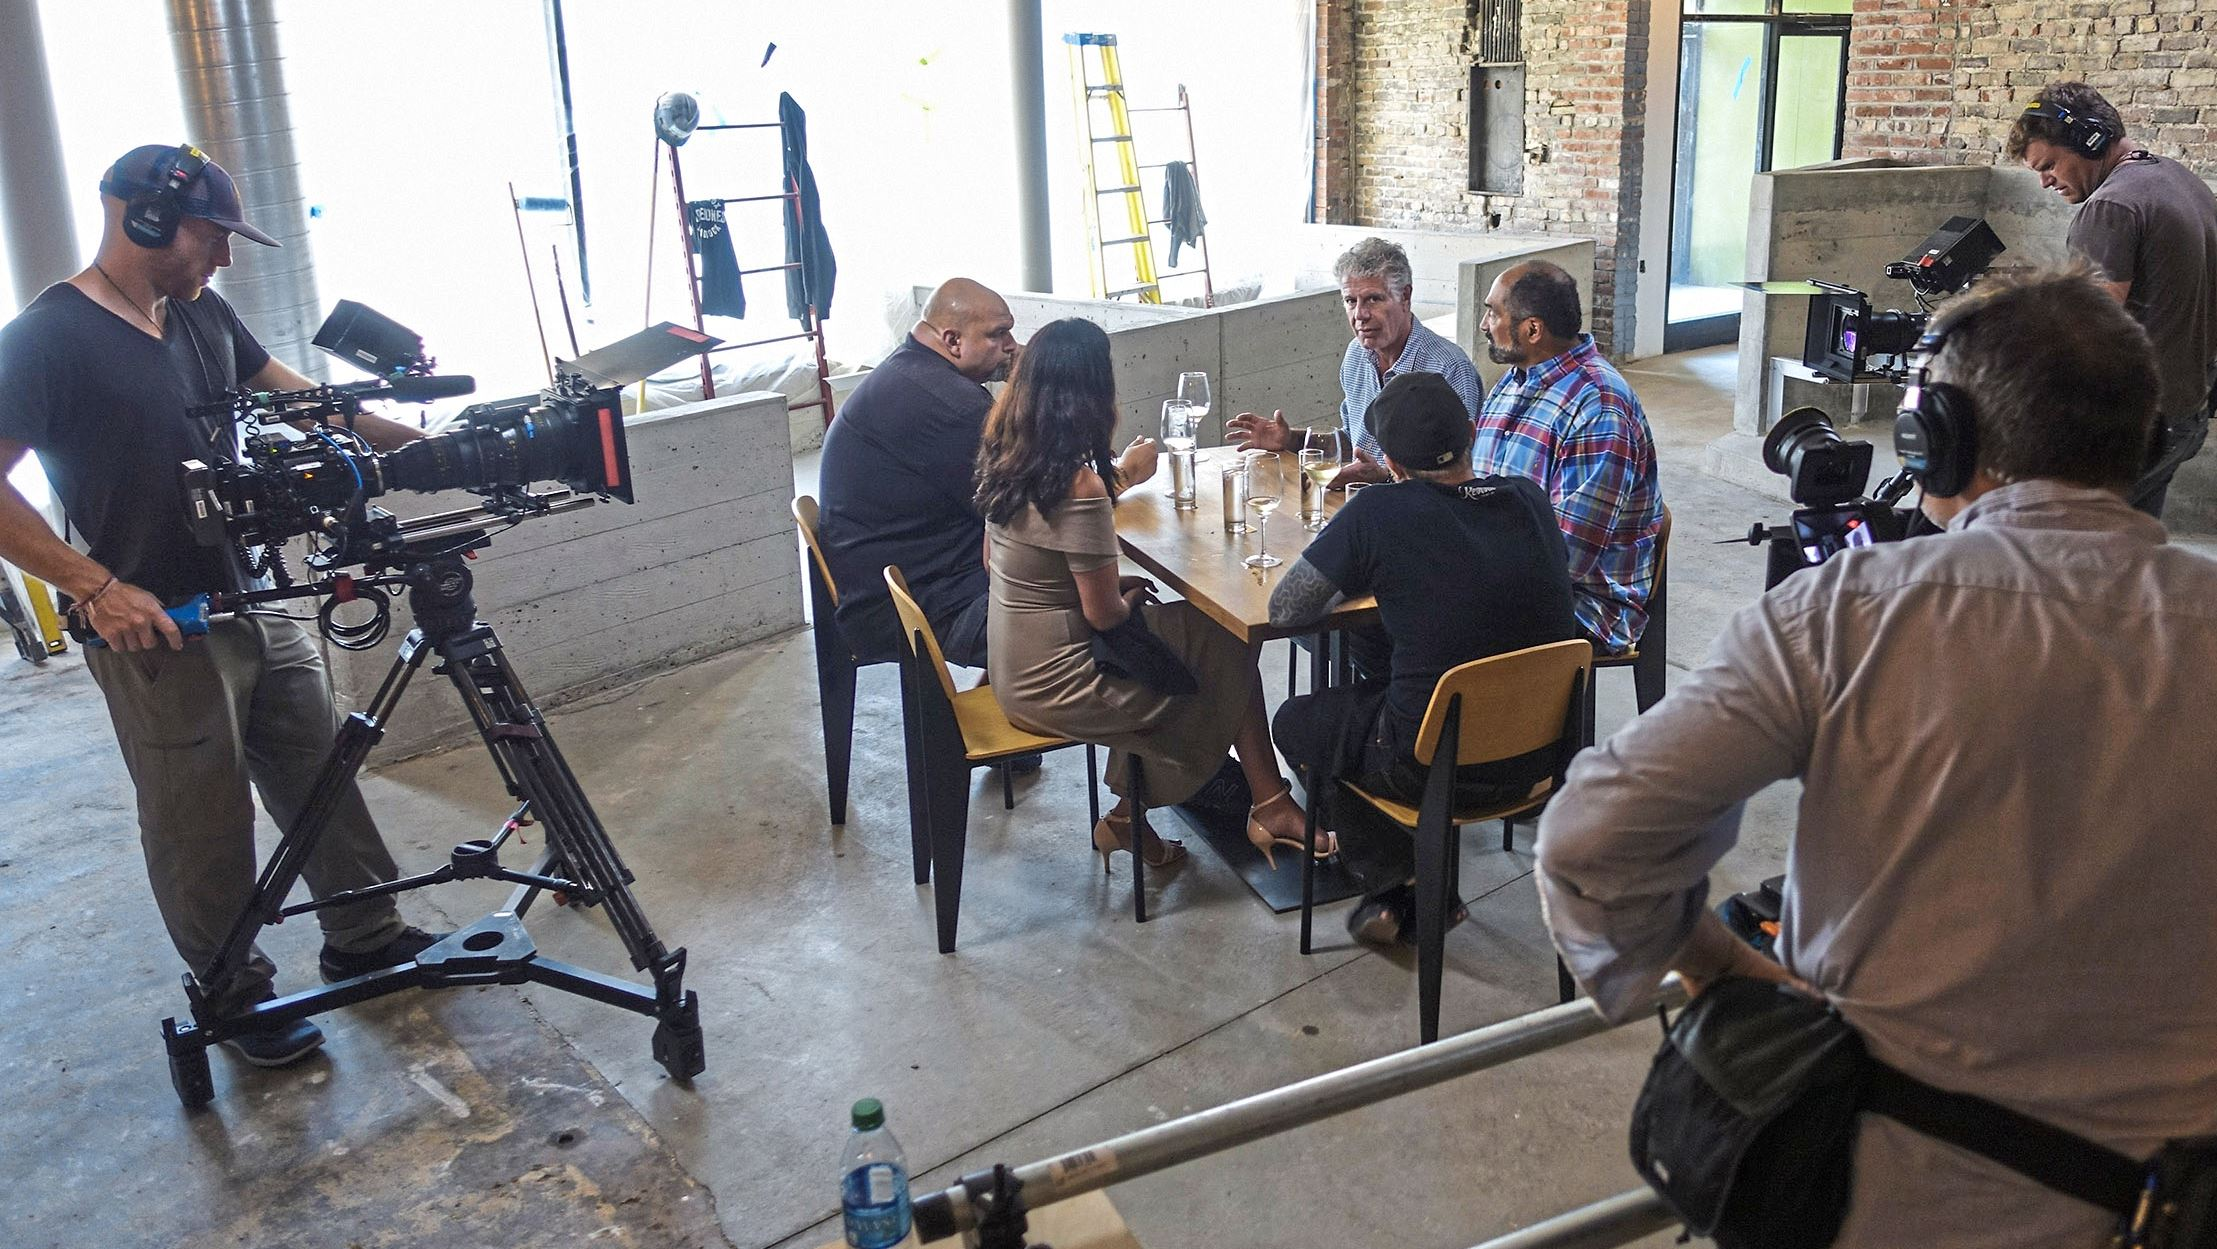 """bourdain 1Pittsburgh The """"Parts Unknown"""" crew films Anthony Bourdain at the yet-to-be-opened Superior Motors in Braddock. From left: Braddock Mayor John Fetterman, his wife Gisele Fetterman, Superior Motors' owner and chef Kevin Sousa and Steelers great Franco Harris."""